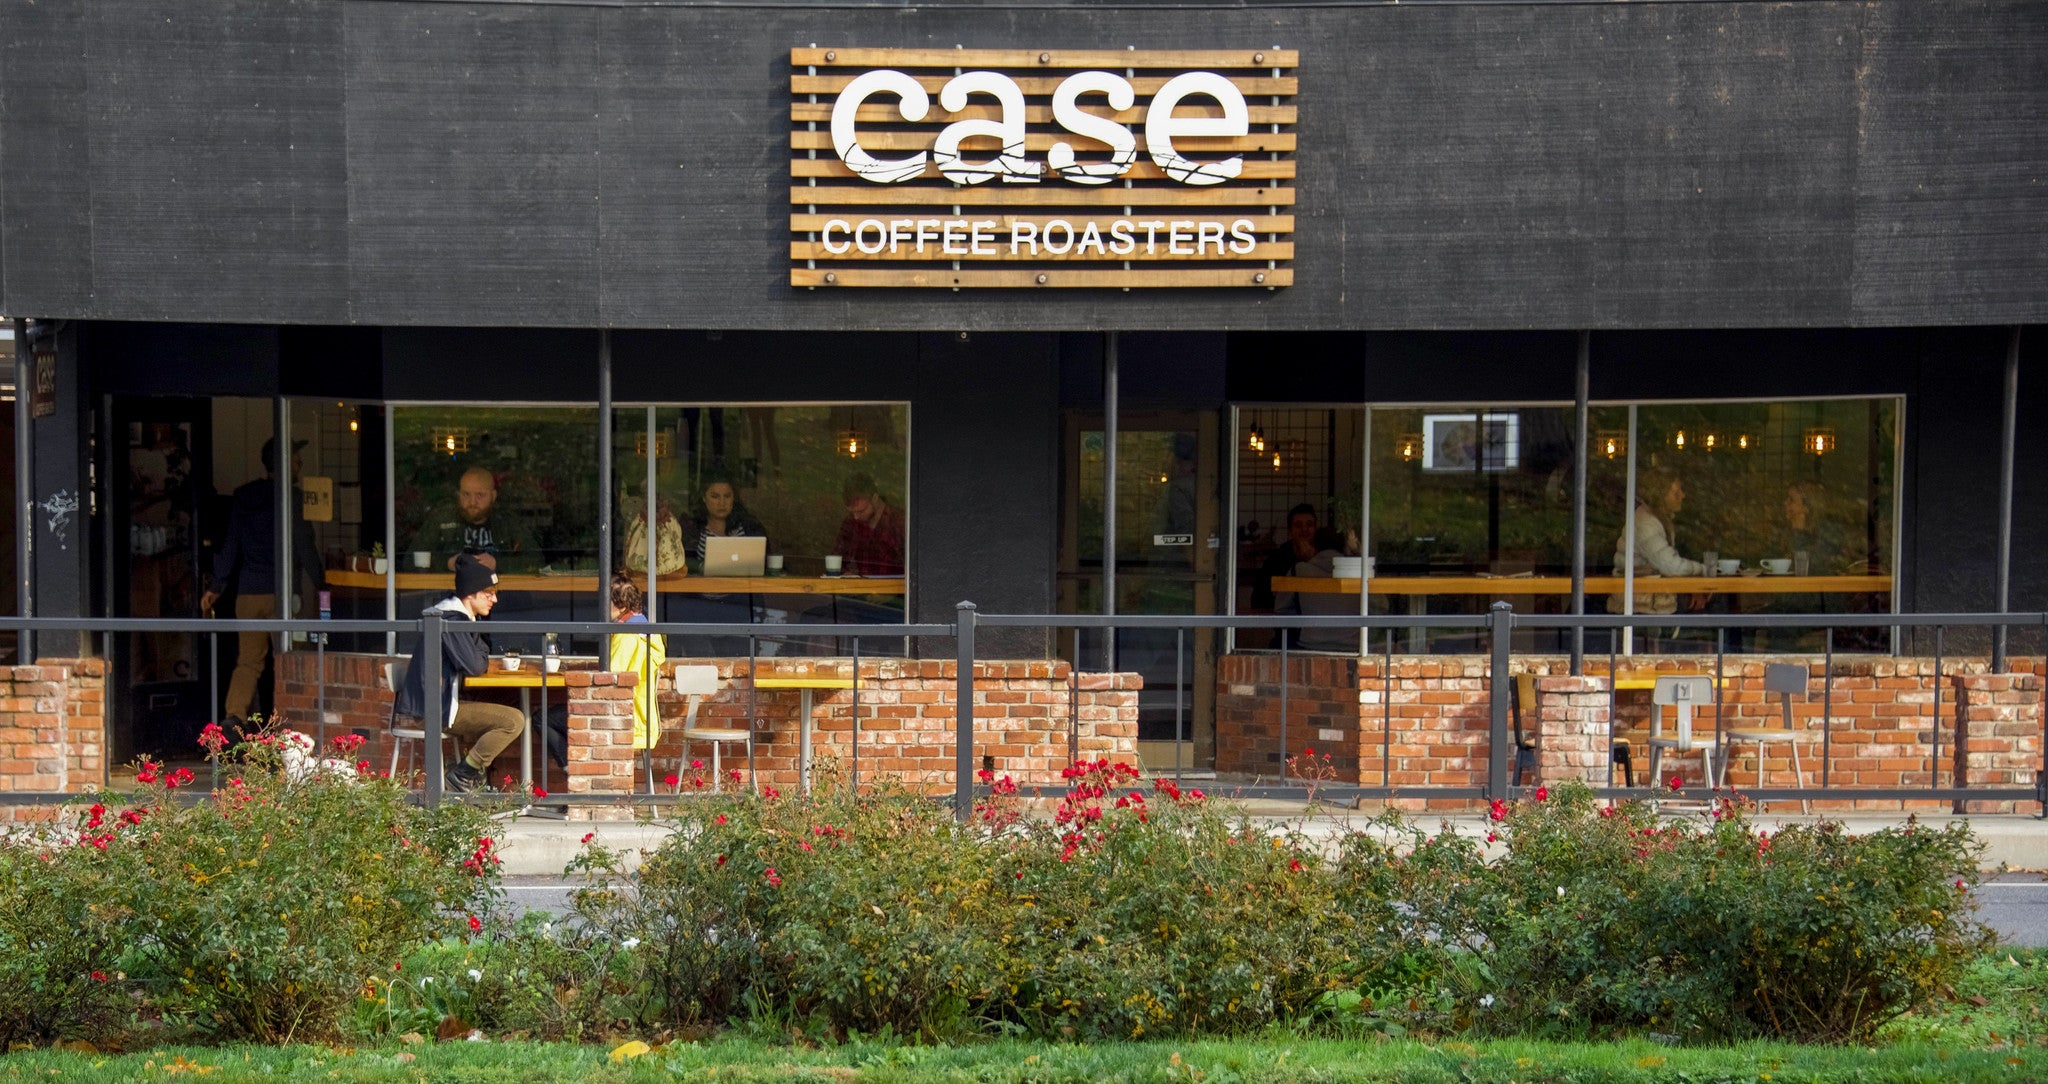 Case Coffee Roasters. Ashland Oregon